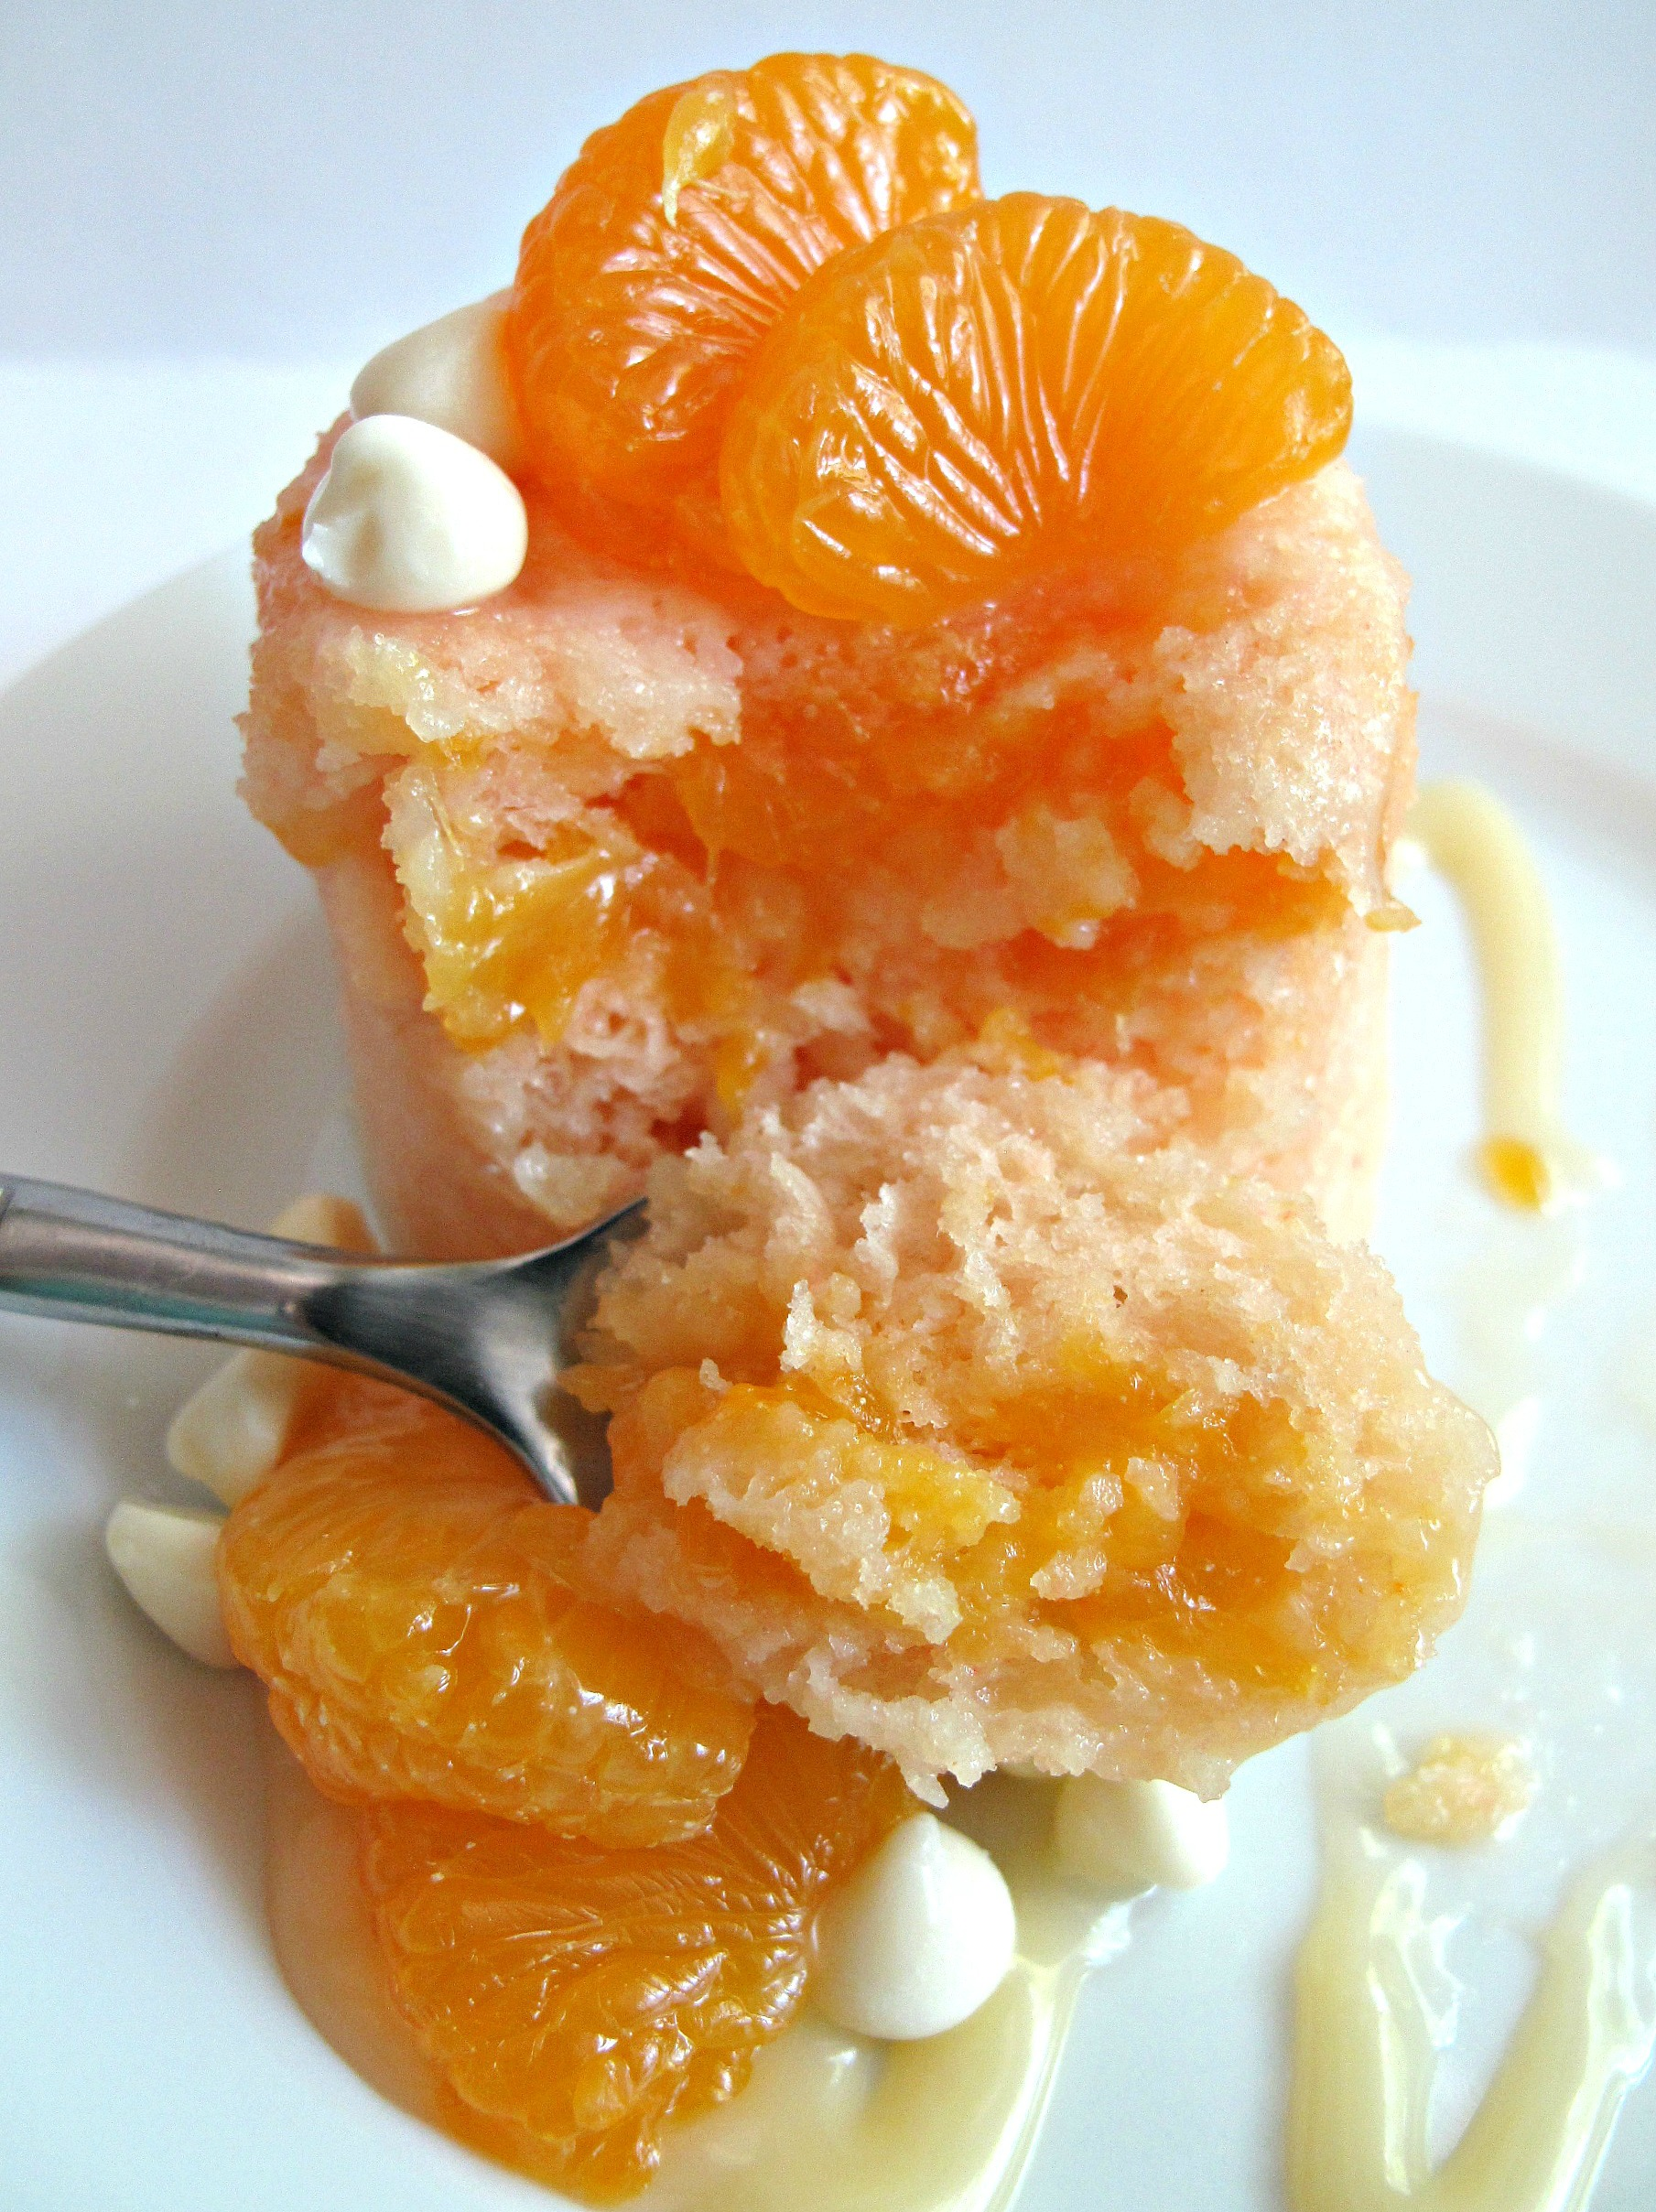 Orange Cake Mix Substitute